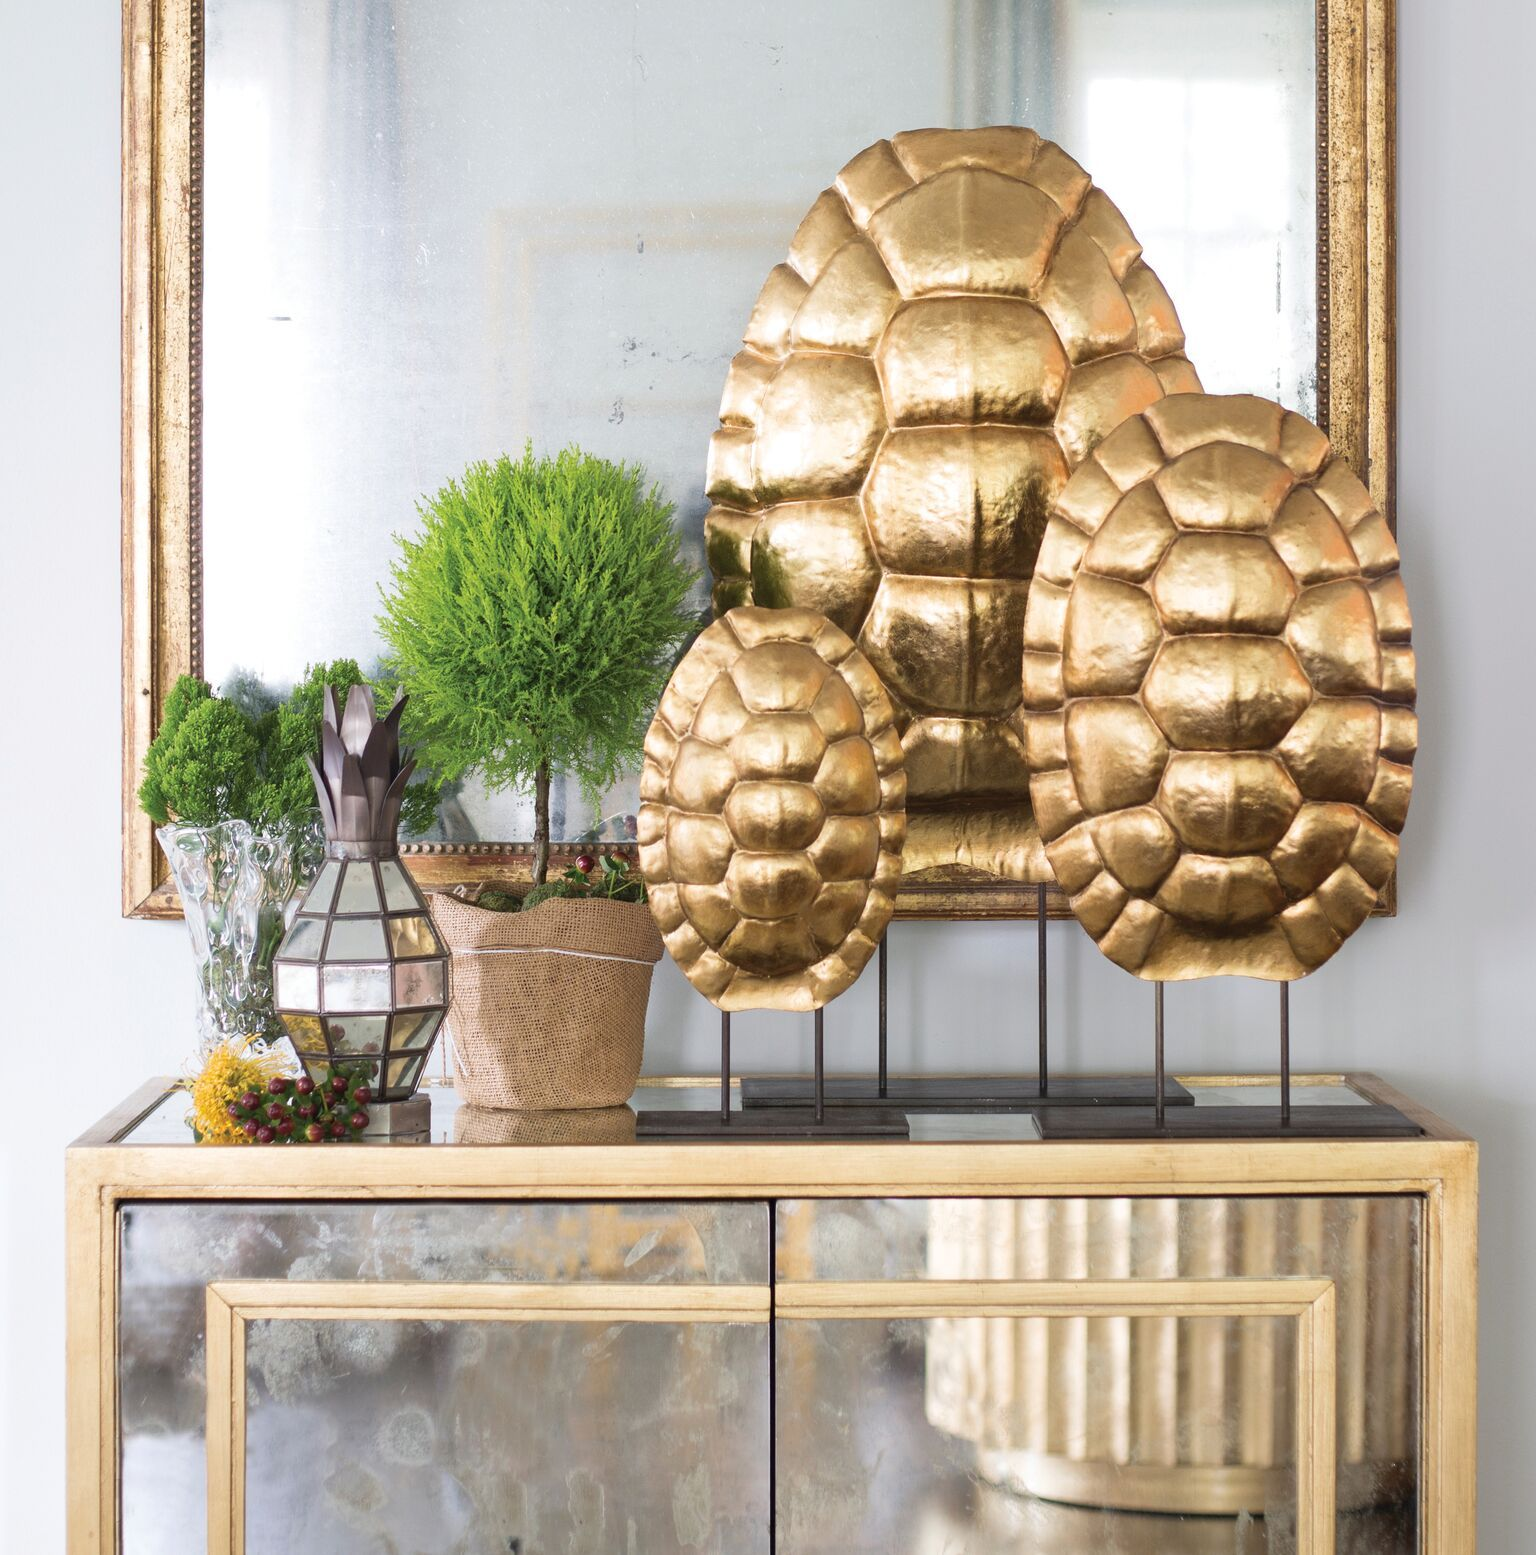 Pin by MAKA Lifestyle on Interiors and Home Decor   Pinterest ...